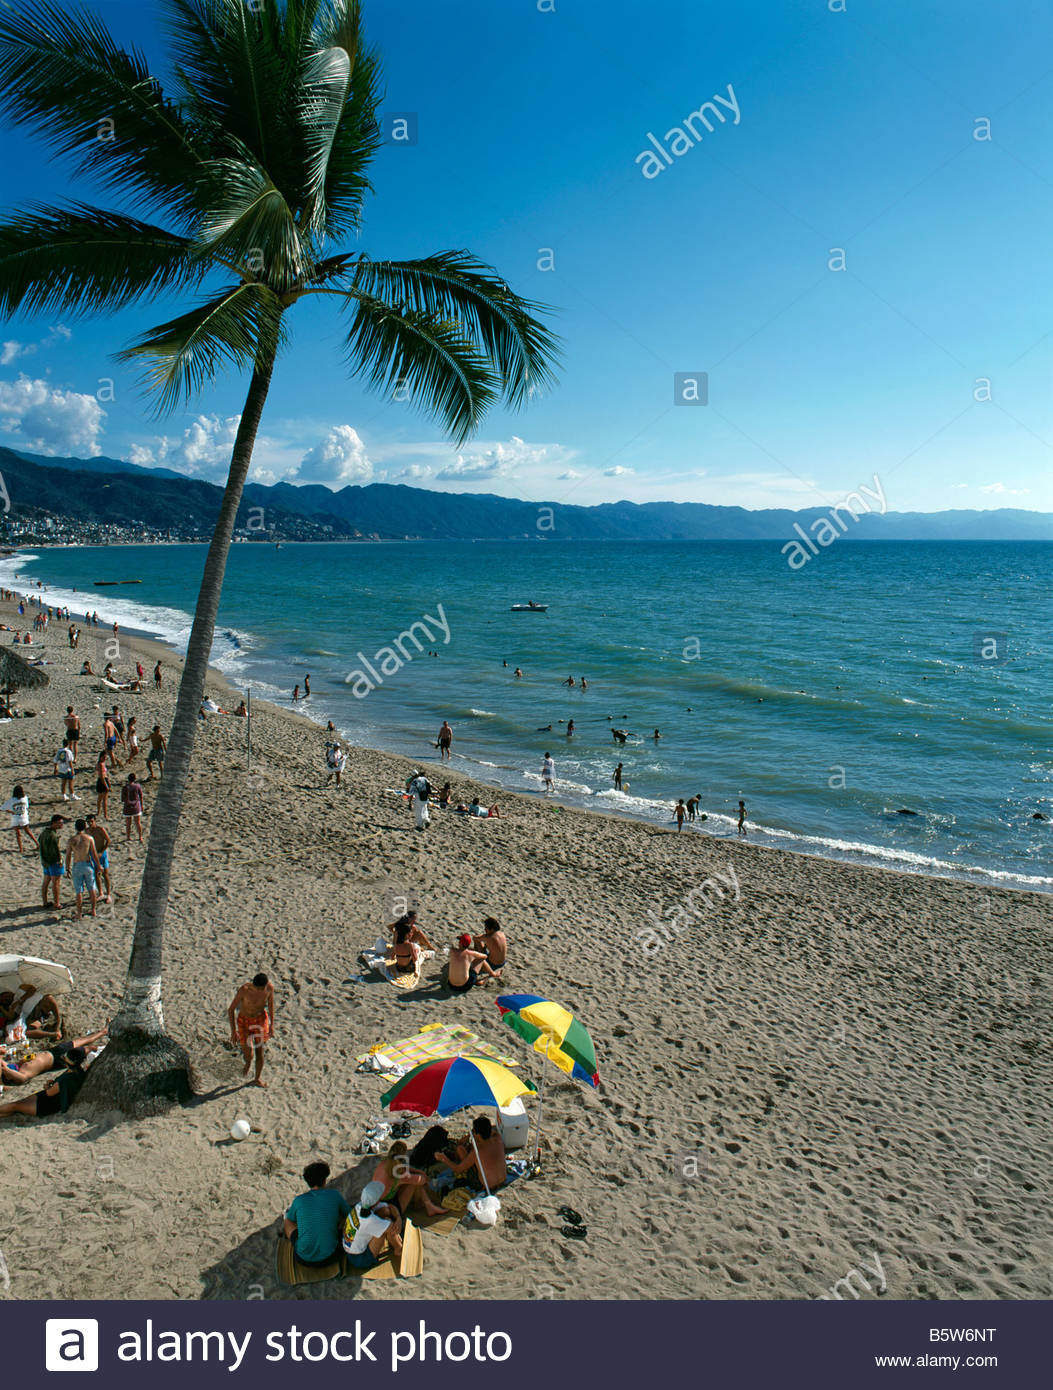 Beach at Puerto Vallarta, Guadalupe, Mexico - Stock Image